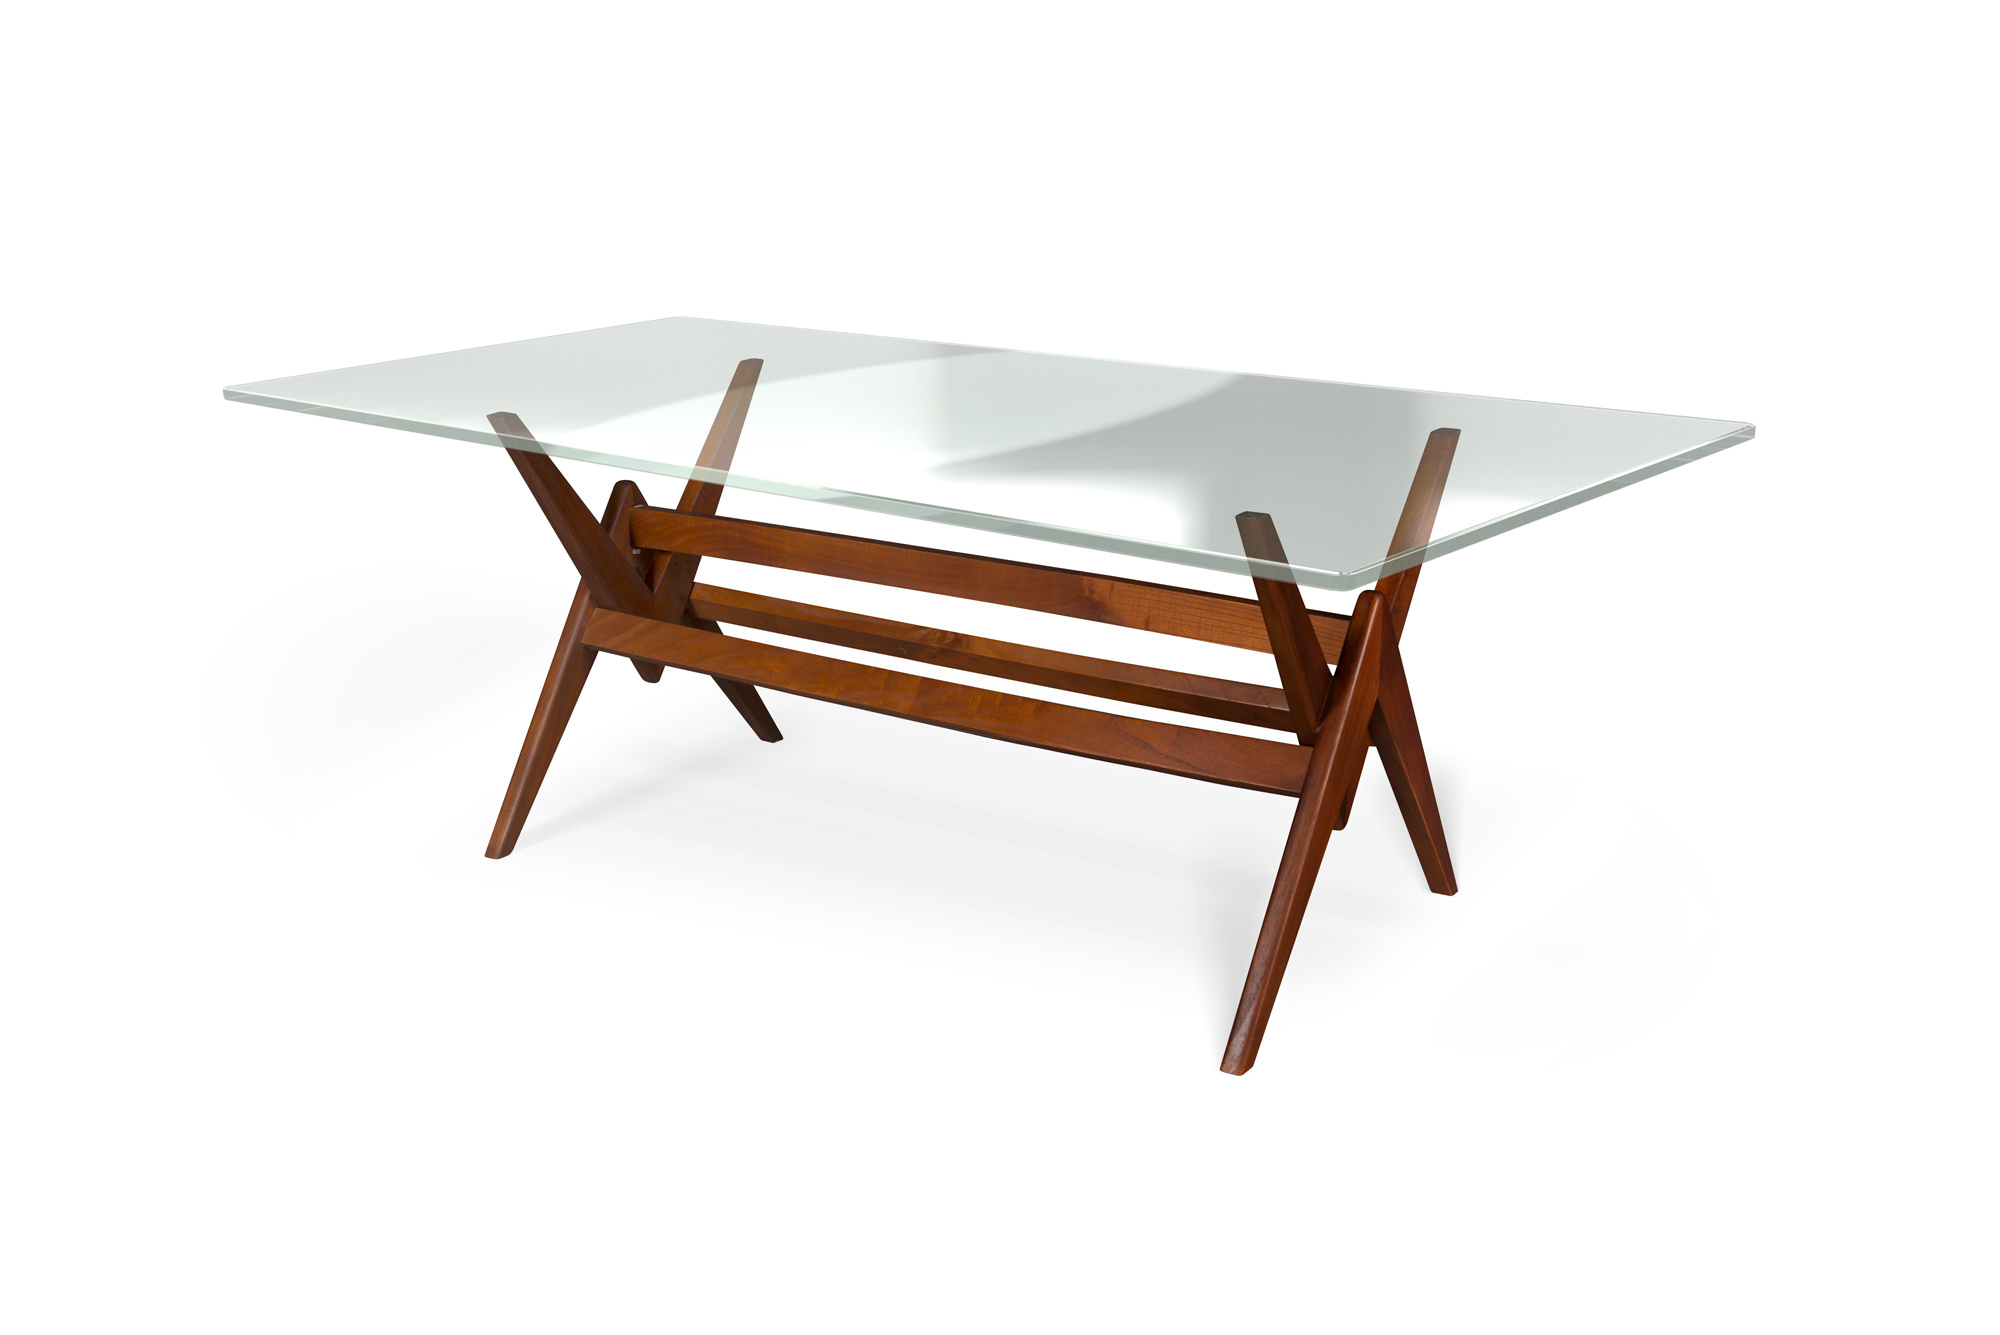 Table W.T.H. 180-2